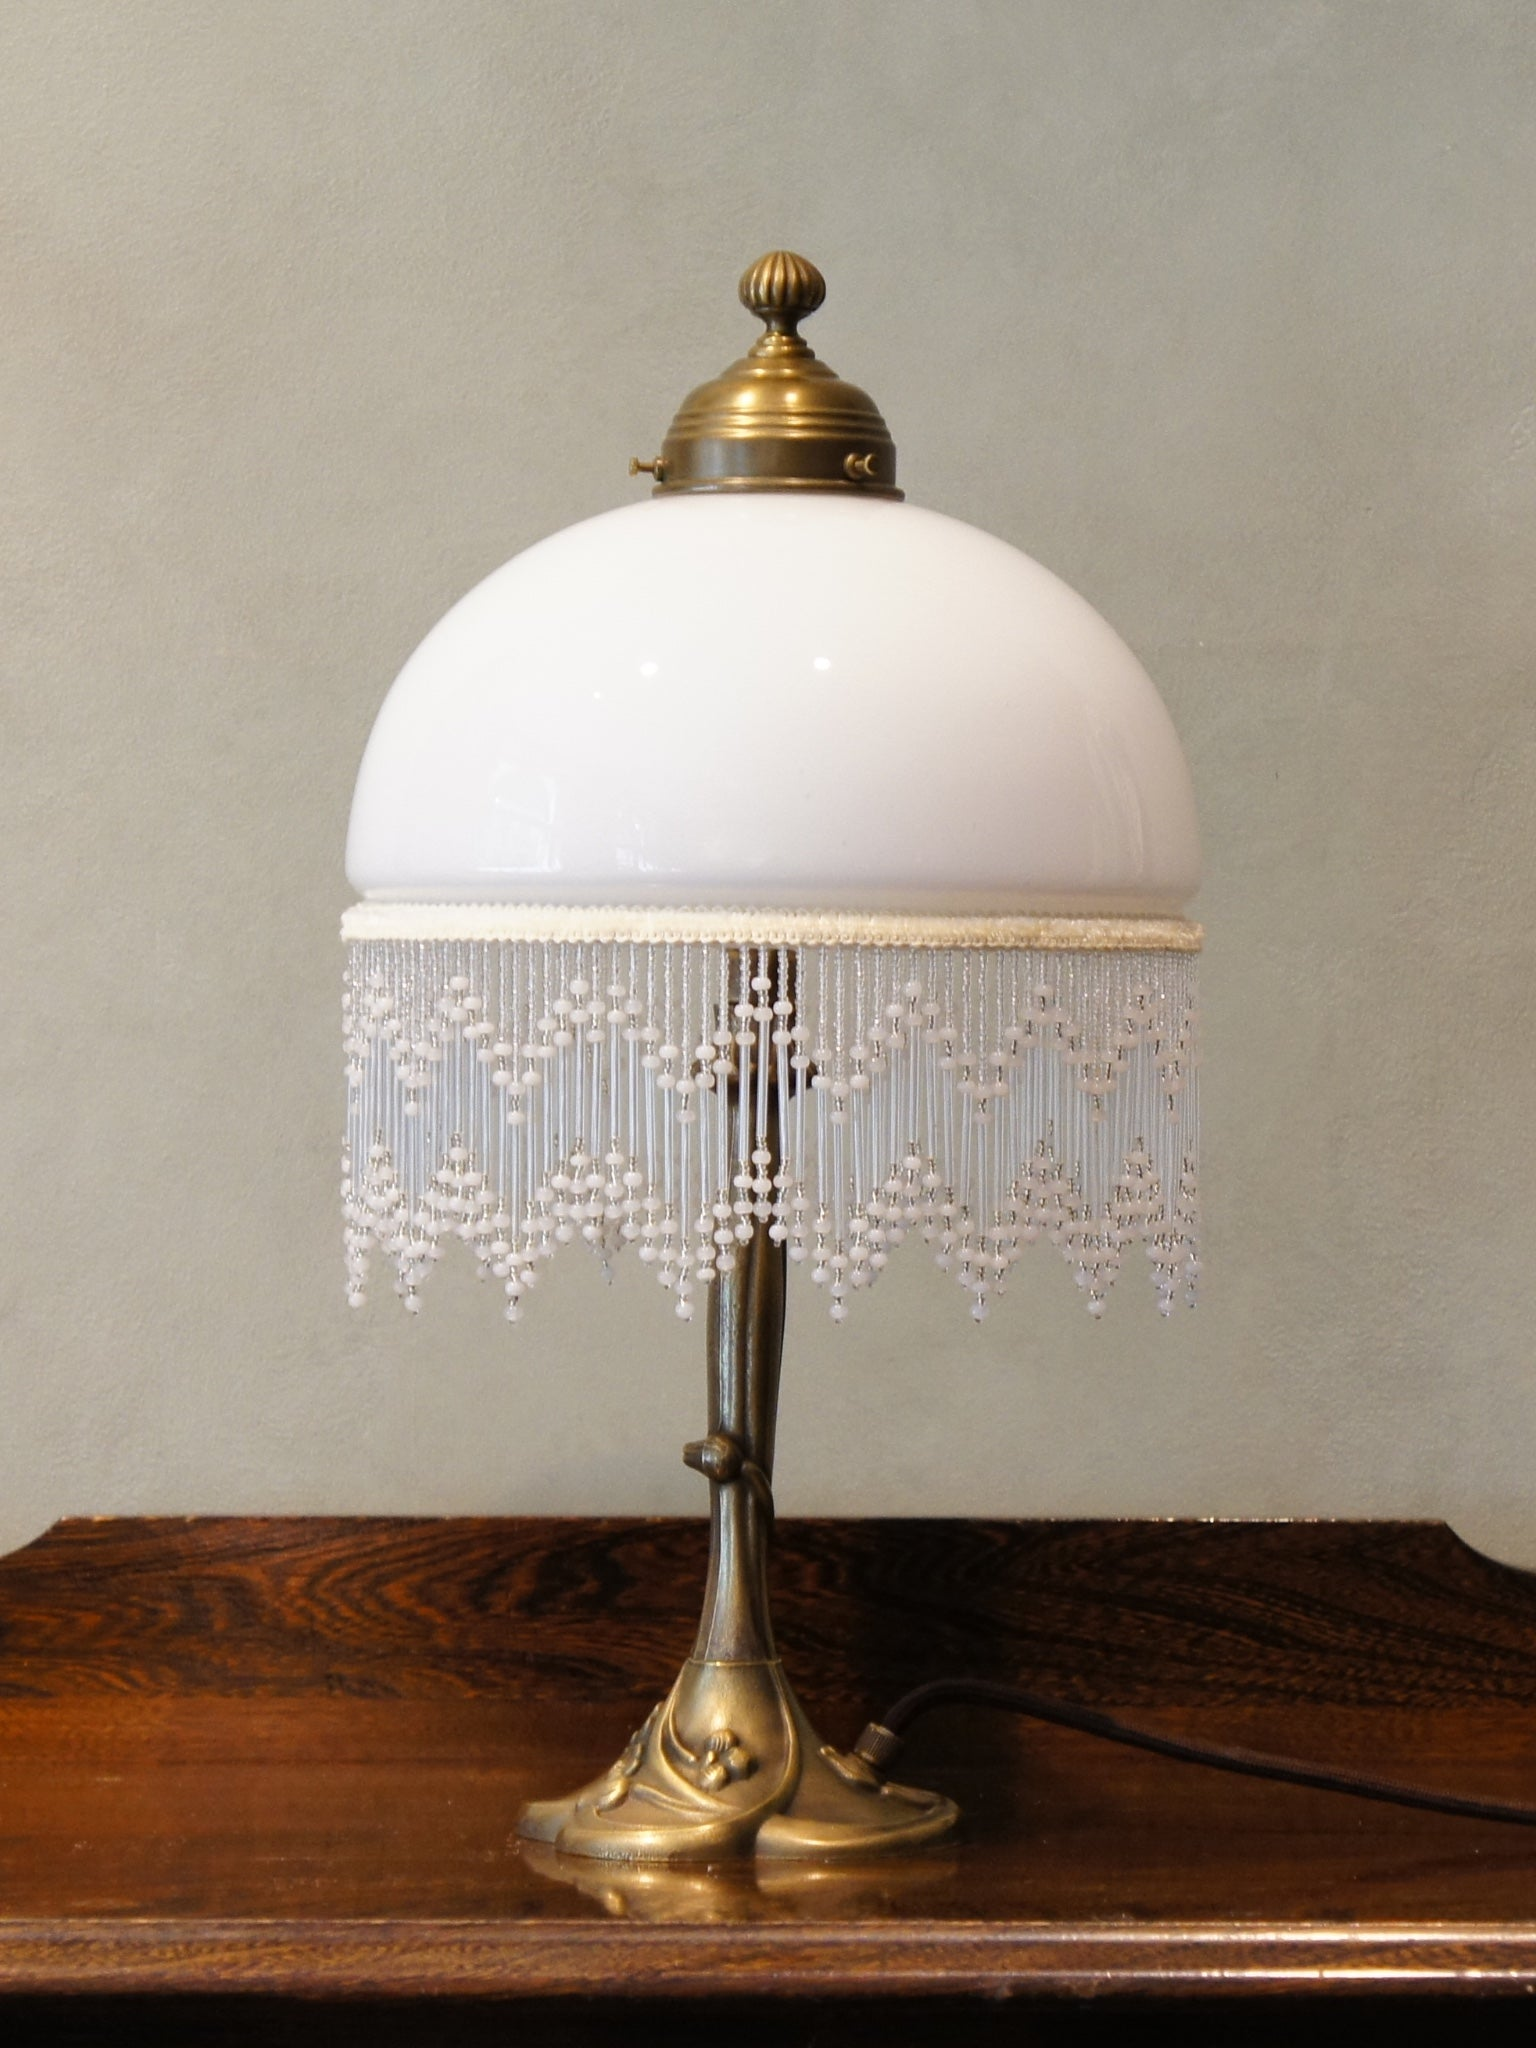 Table Lamp with a Floral Base